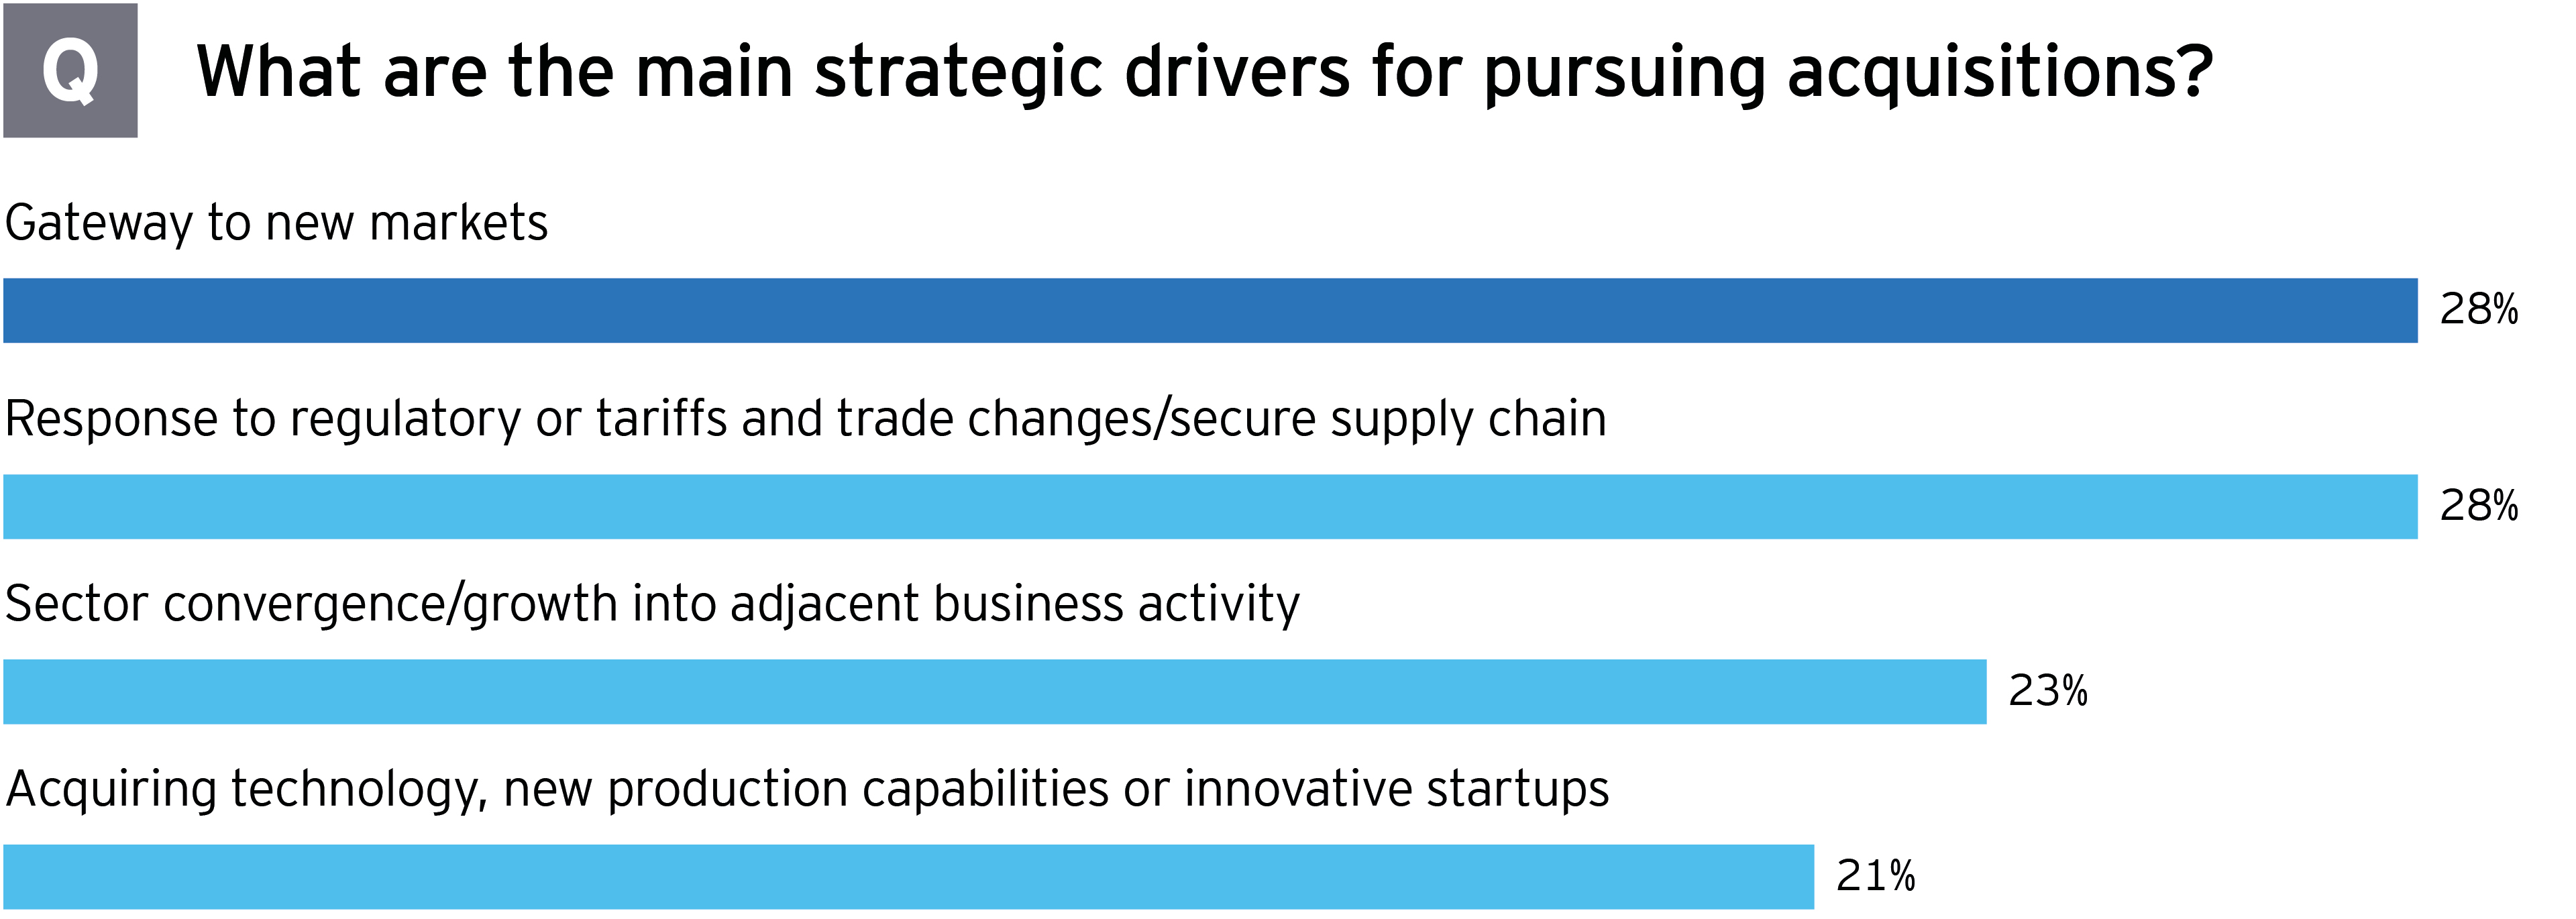 What are the main strategic drivers to pursuing acquisitions